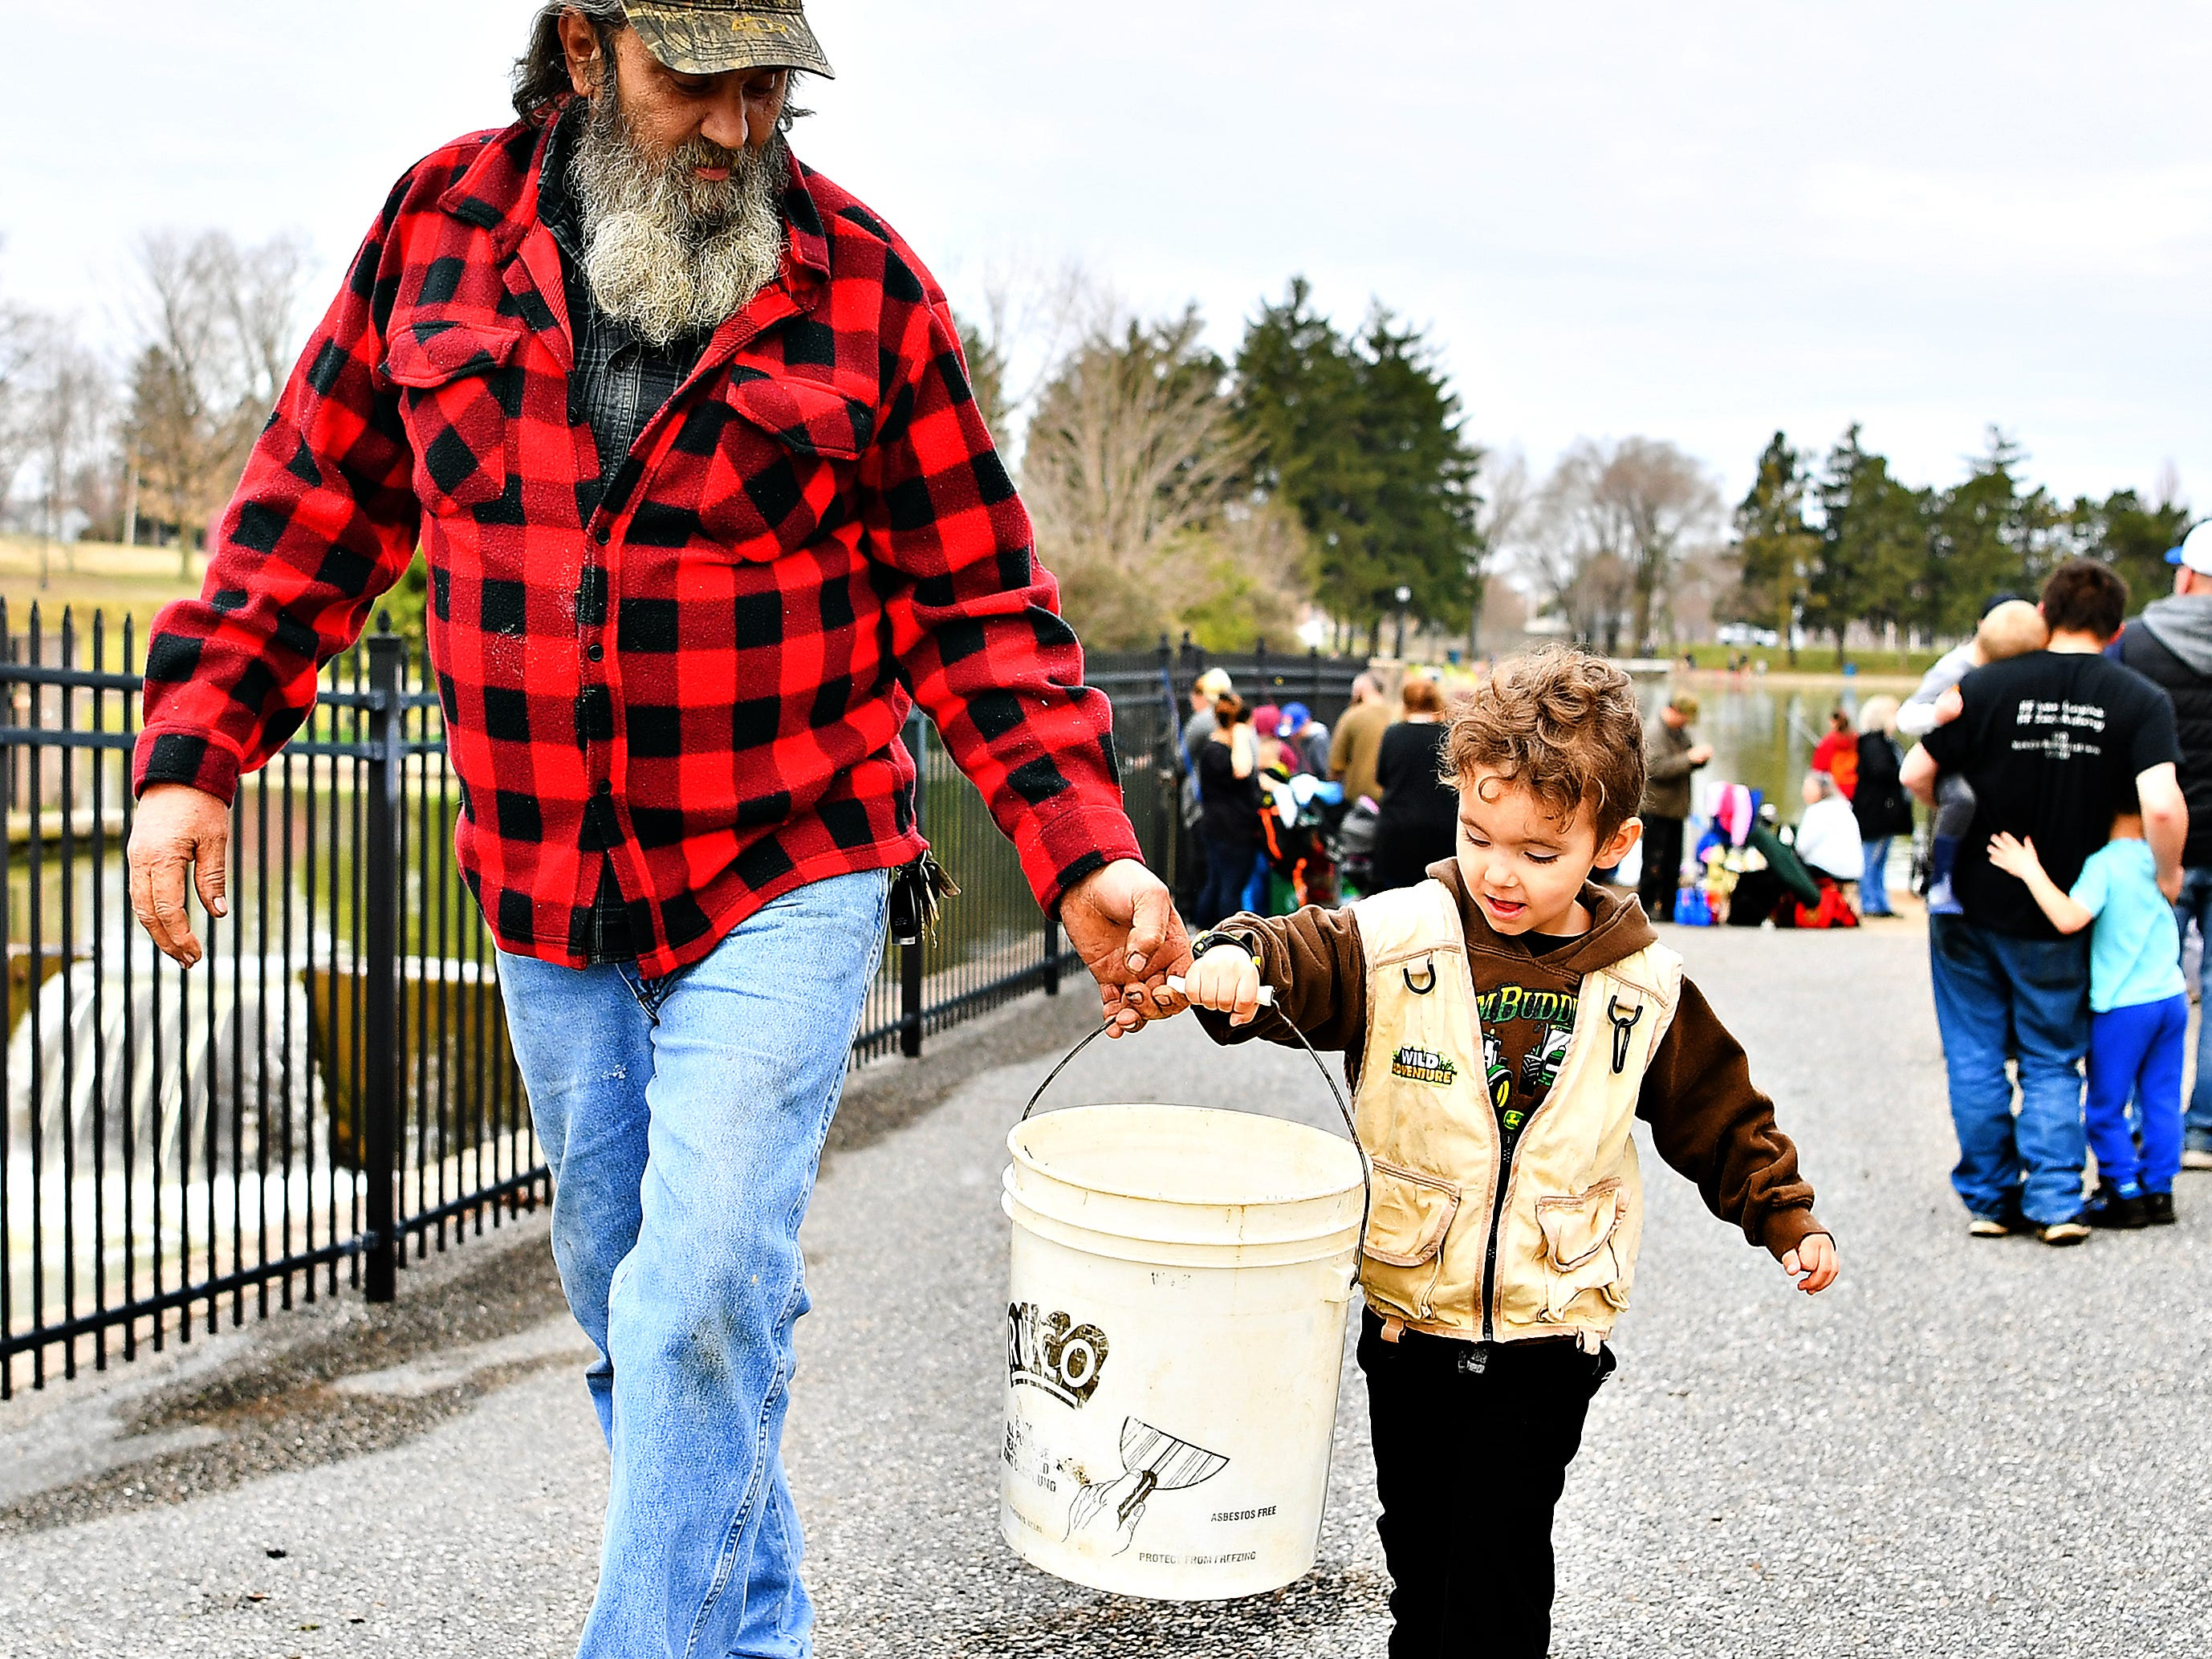 Mark Singleton Sr., left, of Dover, helps his grandson Matthew Singleton, 4,  of West Manchester Township, as they carry a bucket of fish to restock during the 21st Annual William Shaffer Trout Fishing Derby at Kiwanis Lake in York City, Saturday, March 30, 2019. Dawn J. Sagert photo